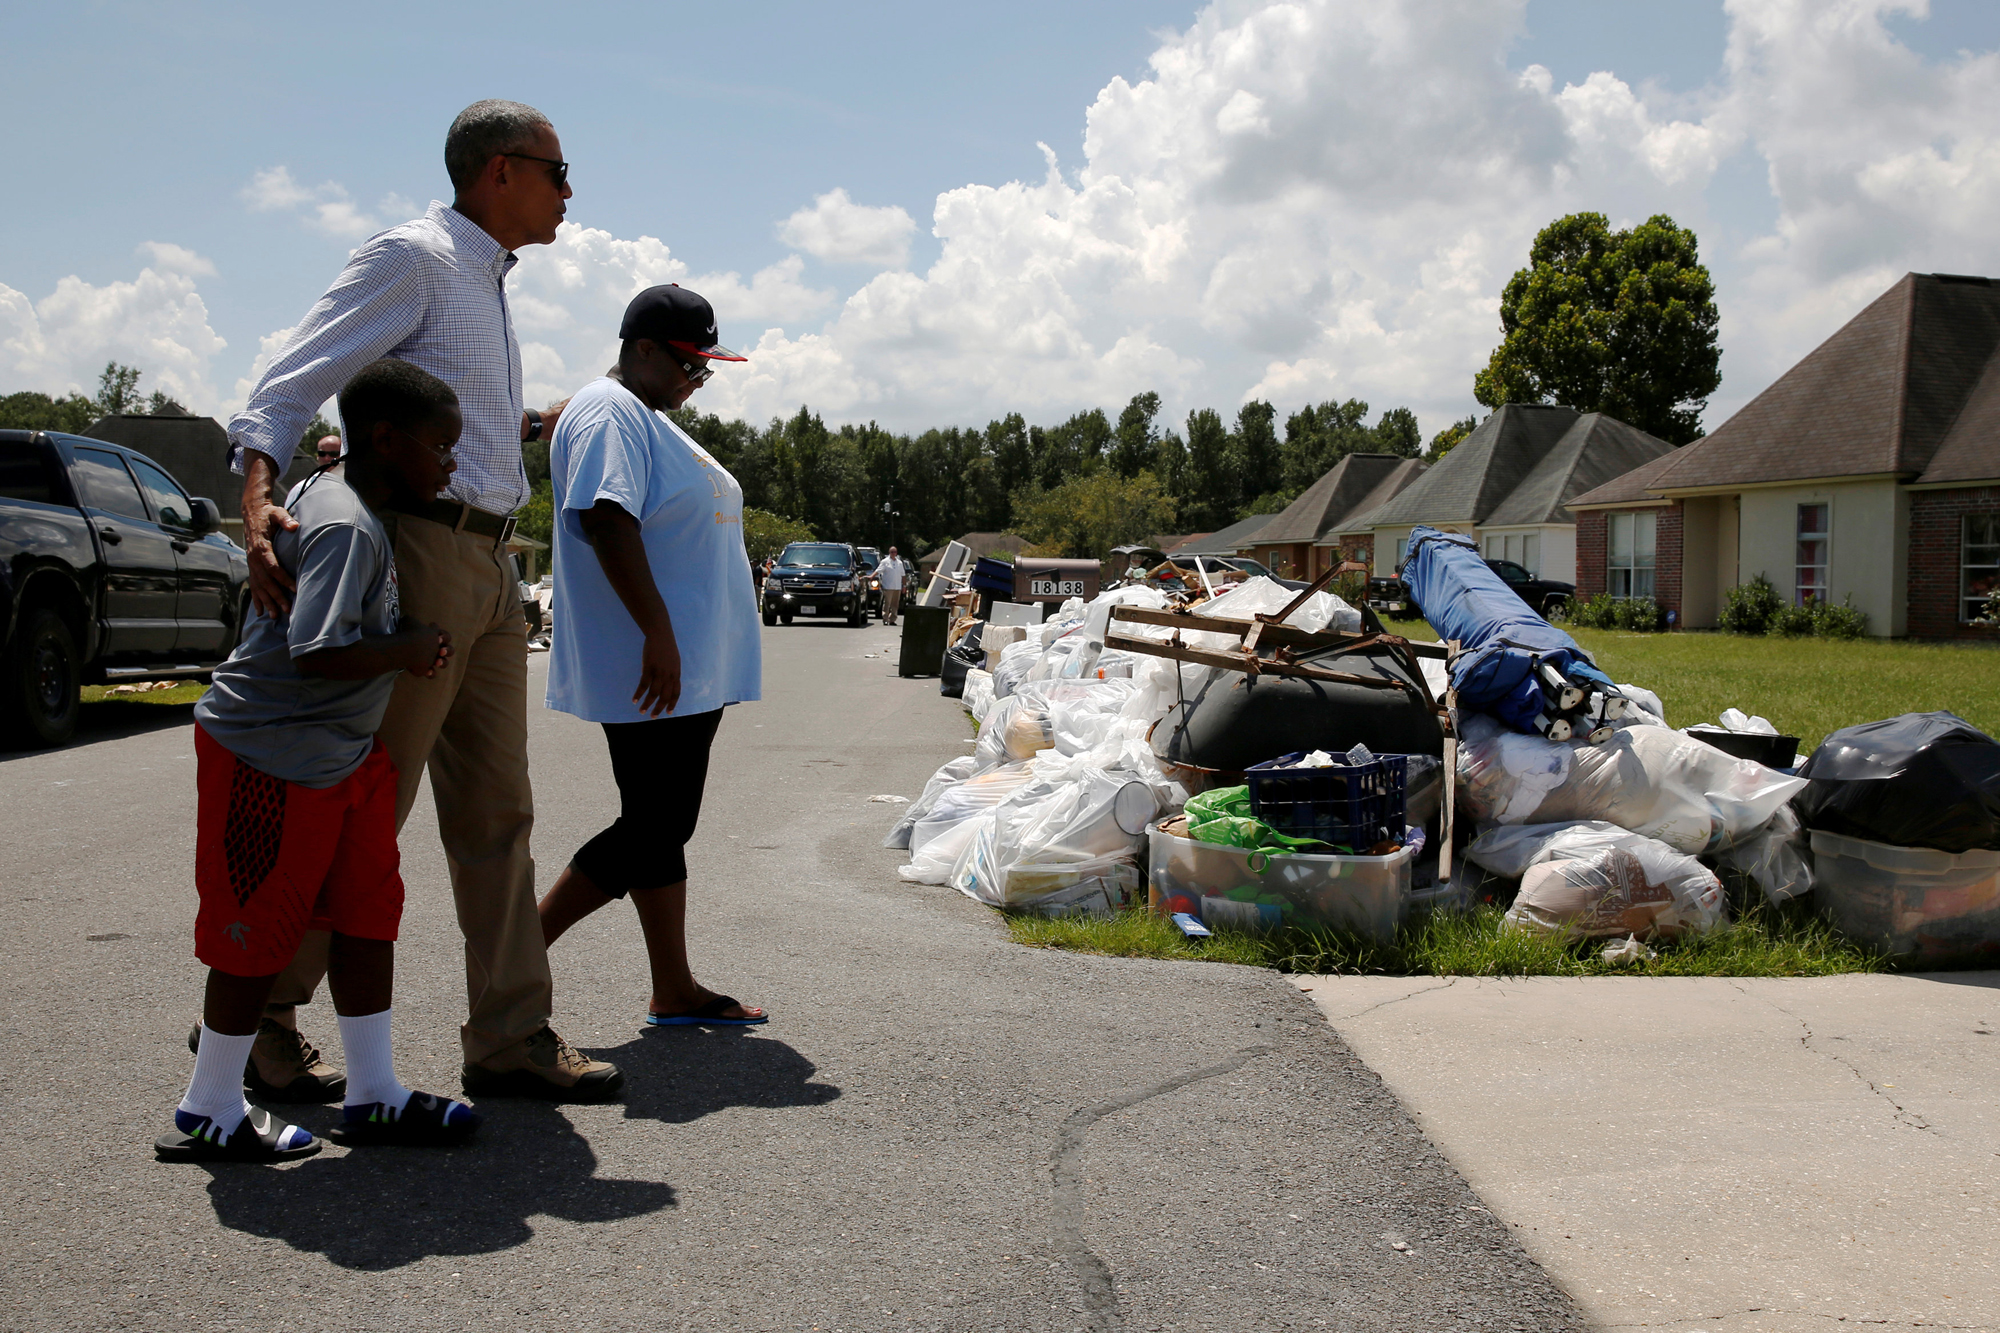 U.S. President Barack Obama greets a family as he tours houses in a flood-affected neighborhood in Zachary